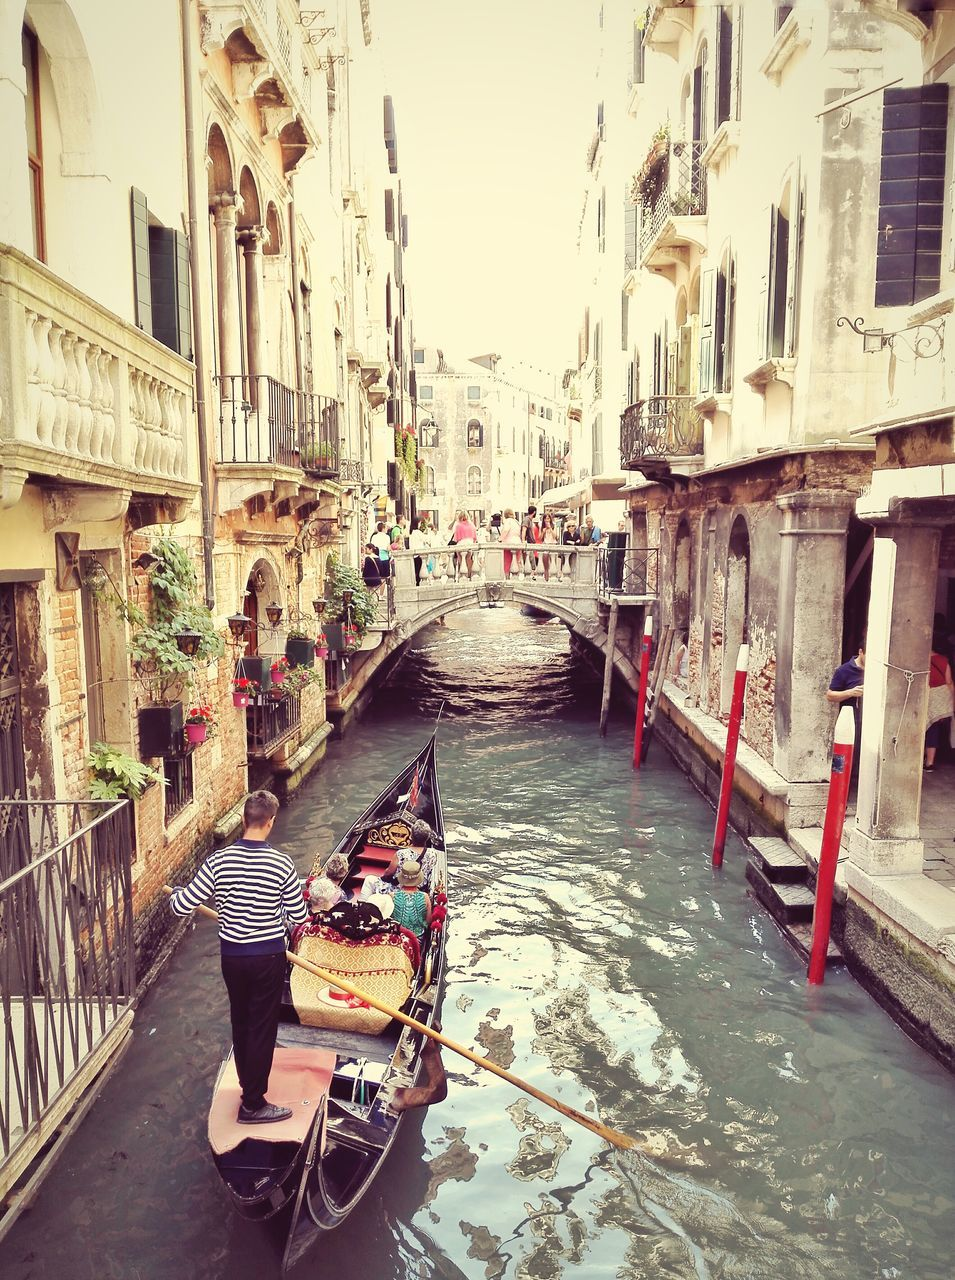 Man with tourist on gondola in canal amidst buildings